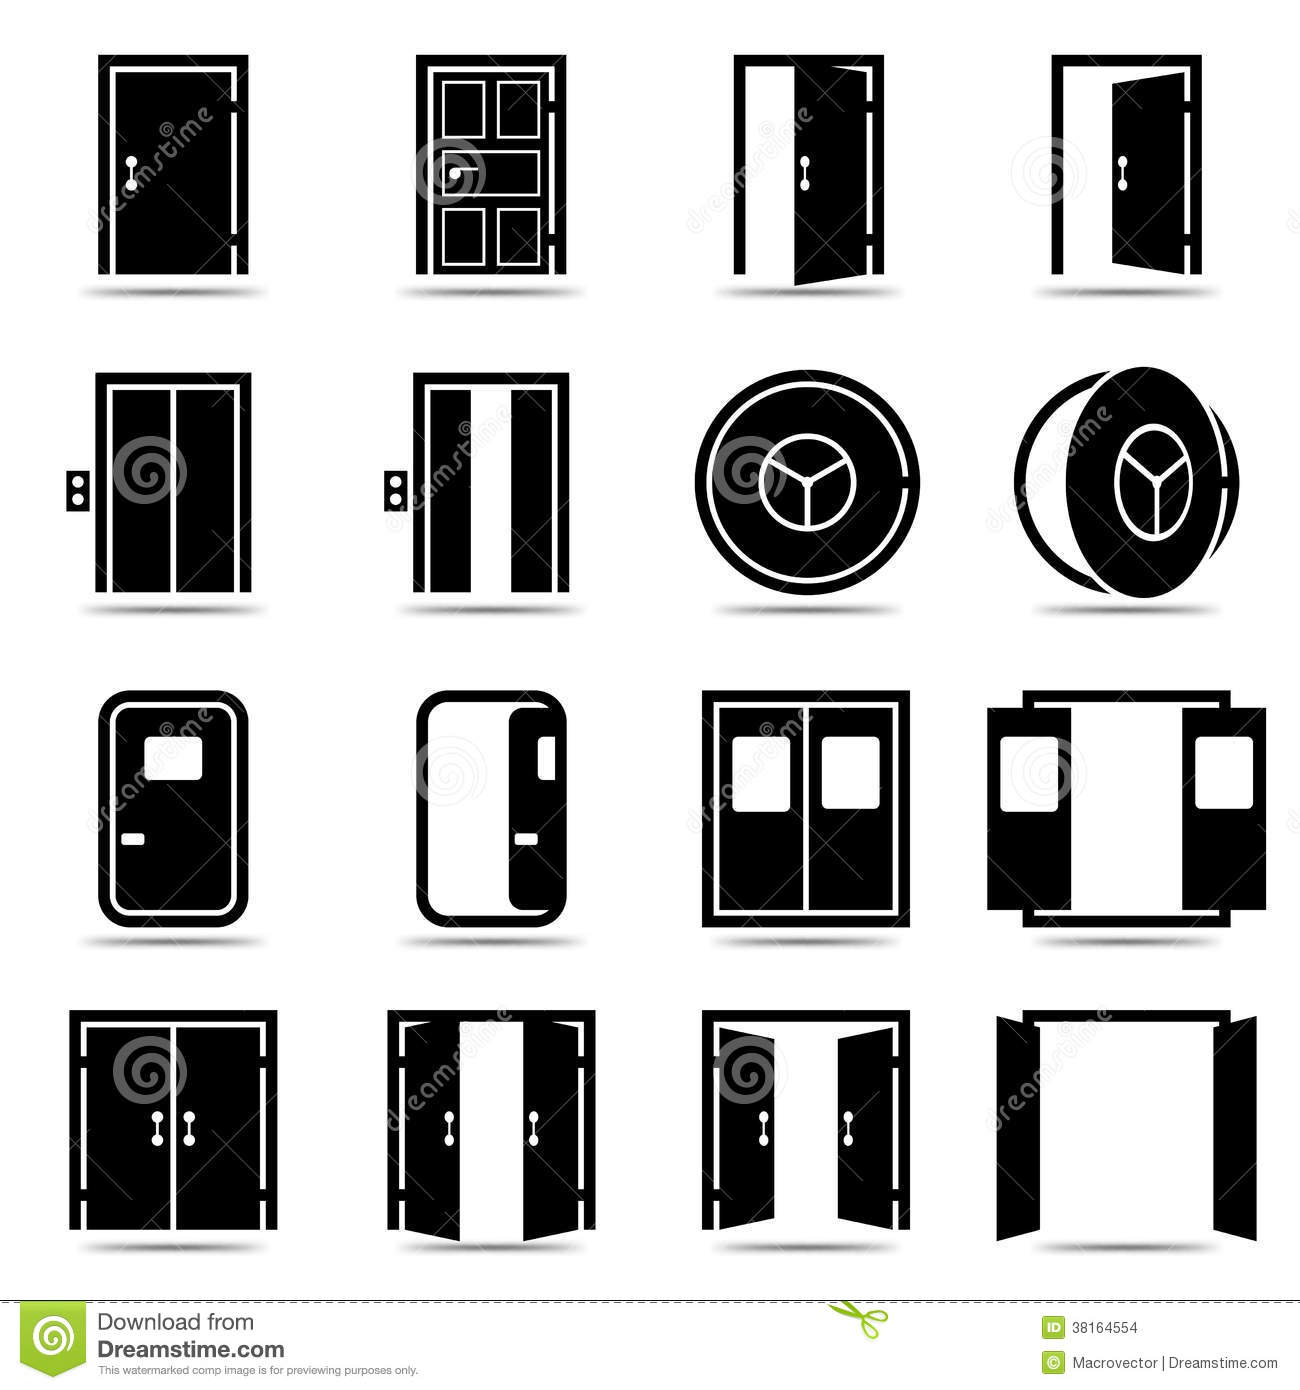 Stock Images Open Closed Doors Icons Set Image38164554 on modern home design plans